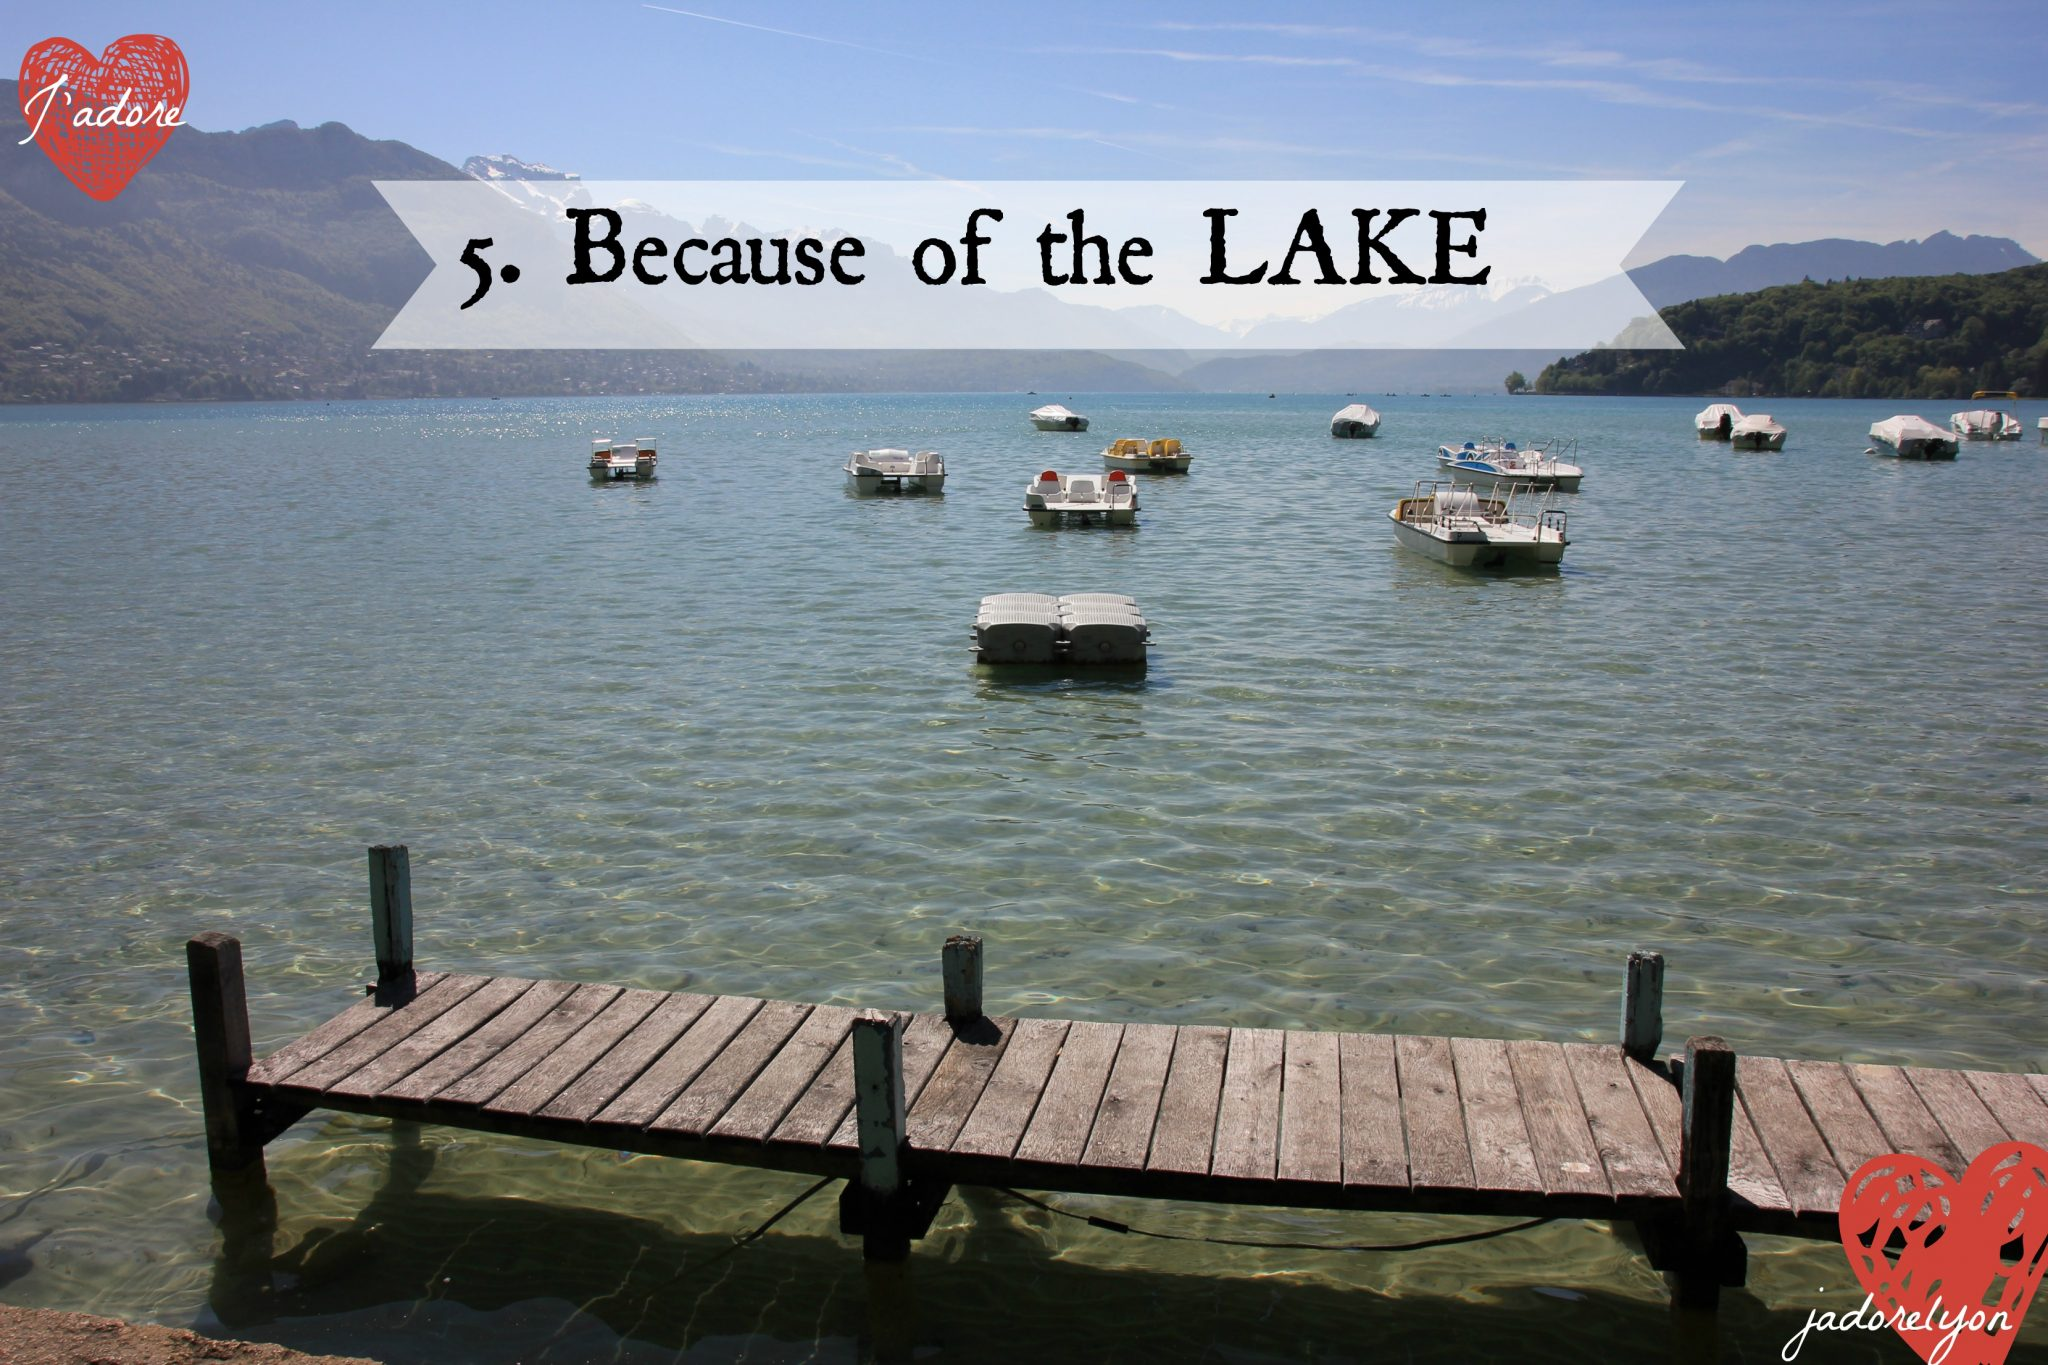 Because of the lake - Annecy is the best